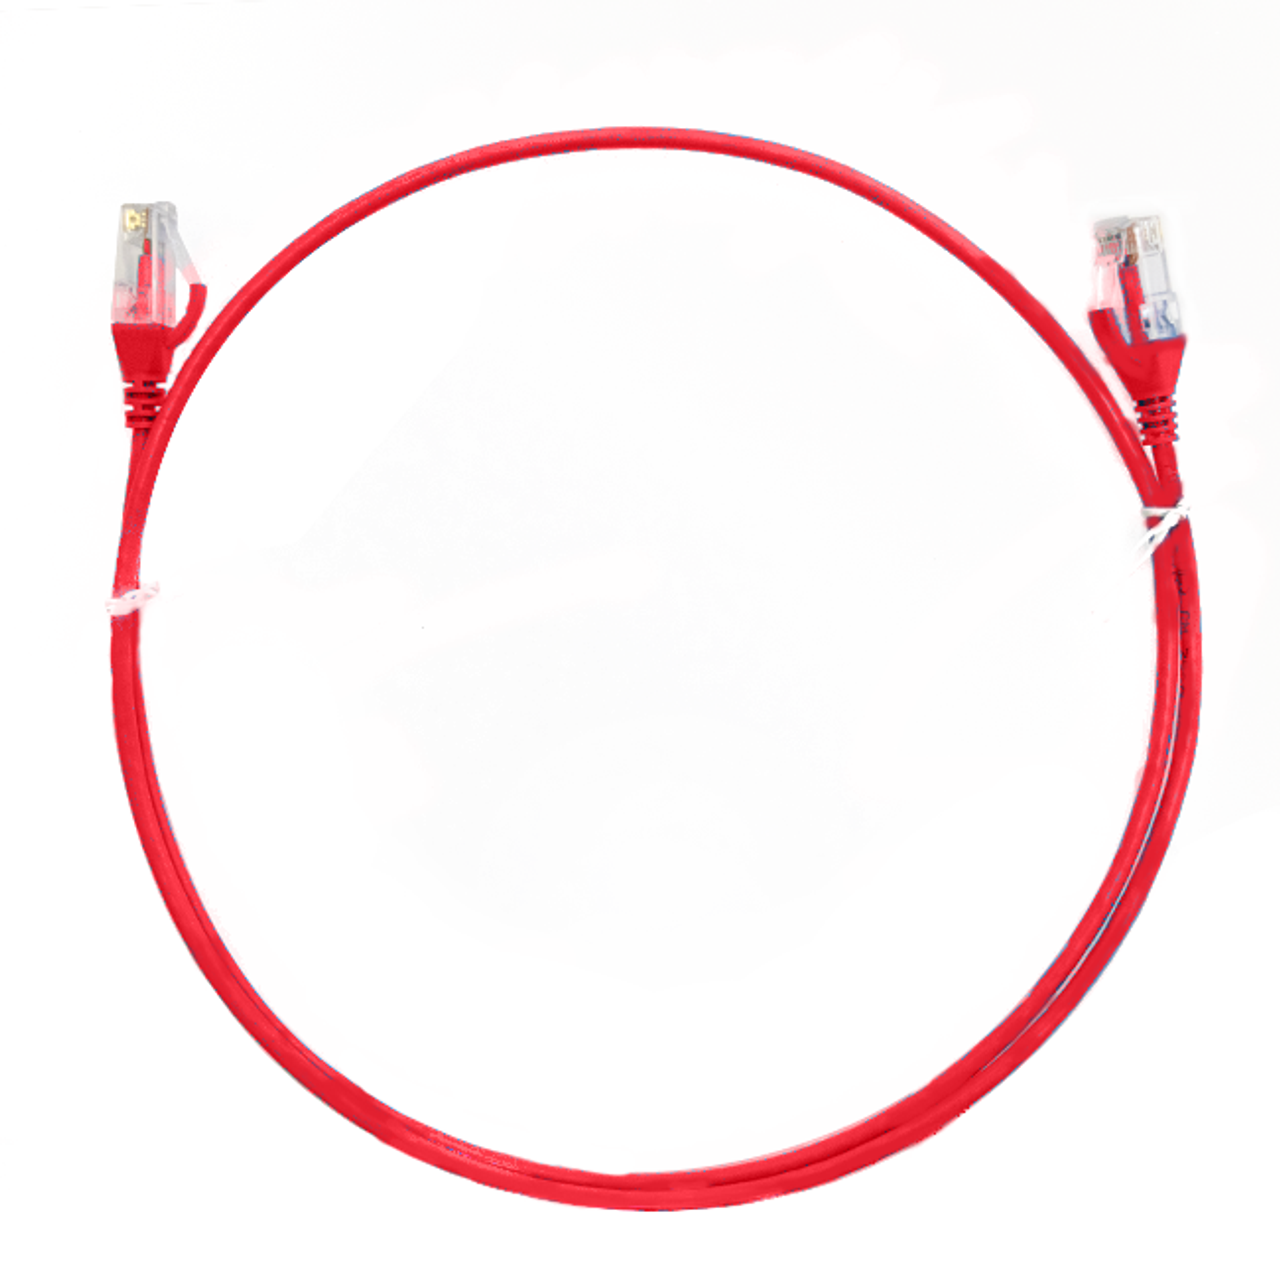 Image for 2.5m Cat 6 RJ45 RJ45 Ultra Thin LSZH Network Cables  : Red CX Computer Superstore